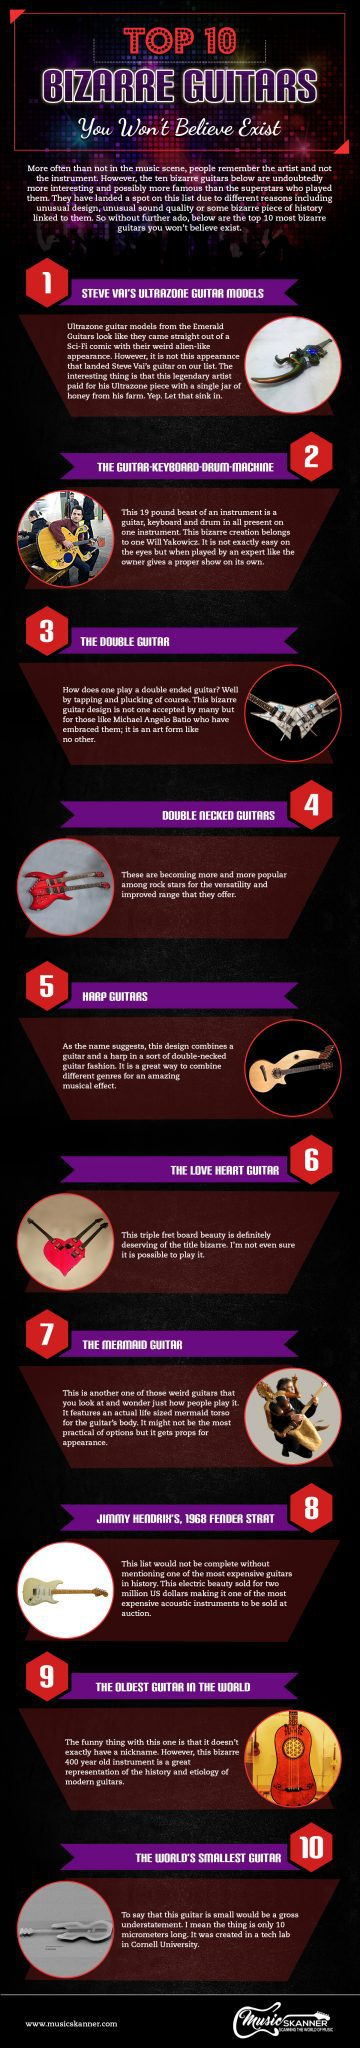 Most bizarre guitars infographic